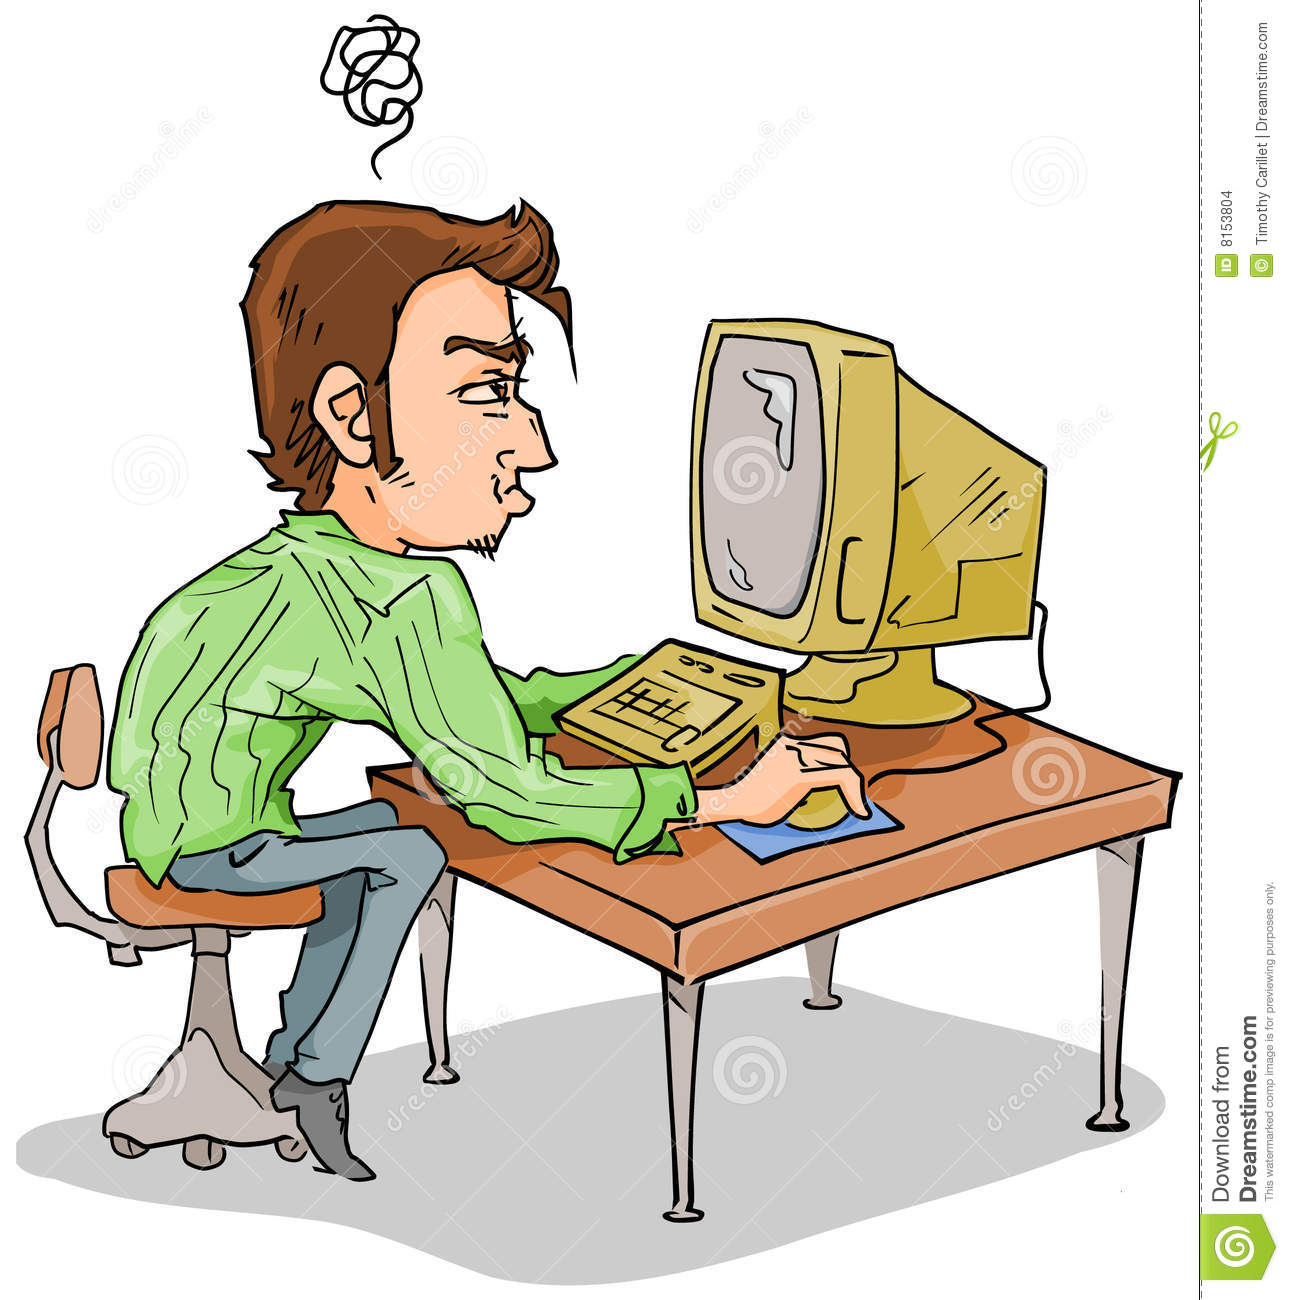 Computer Issues Clip Art: Computer Problems Stock Images